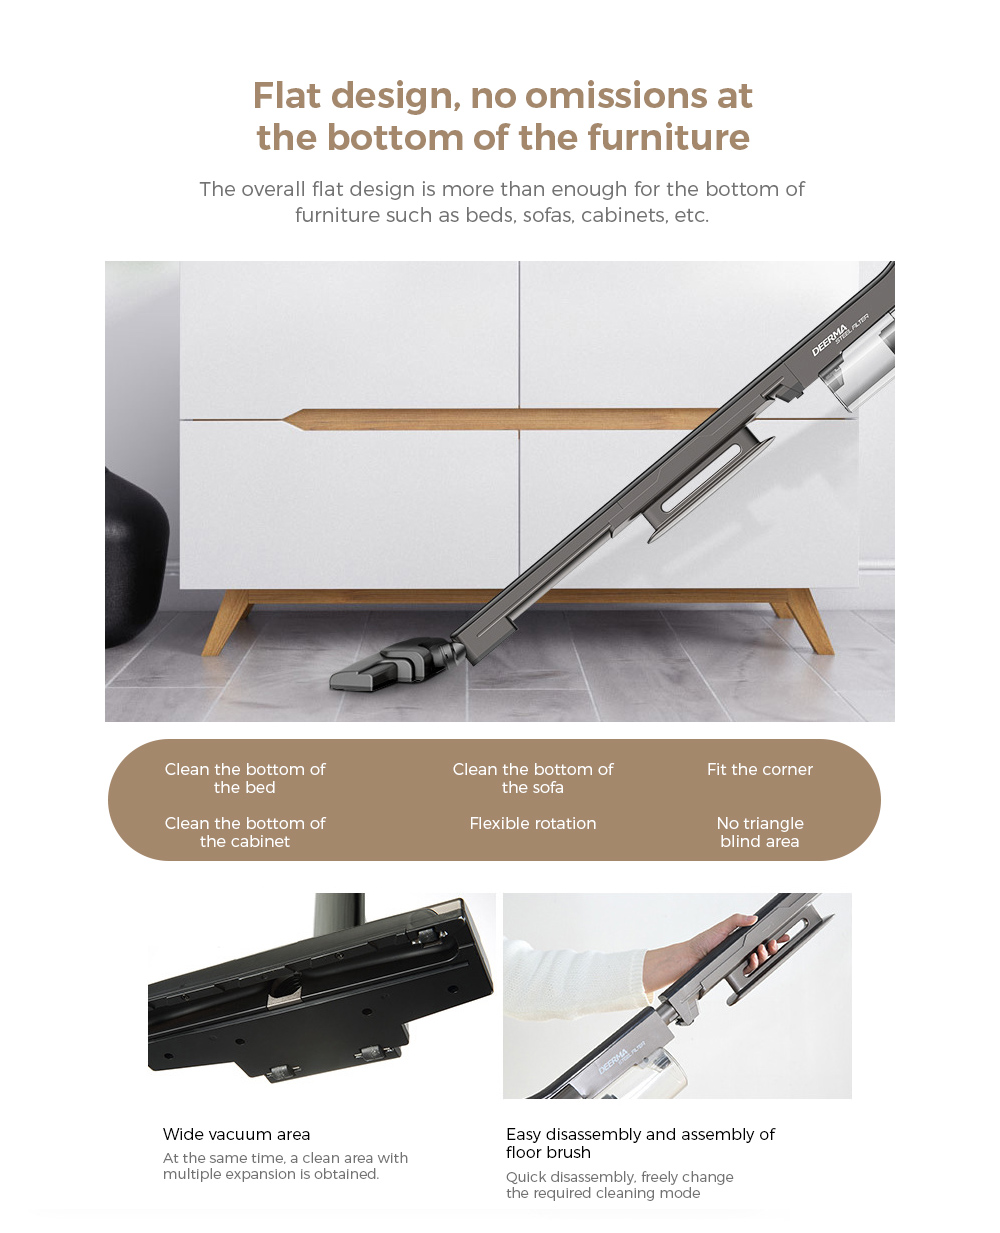 Deerma DEM-DX700S Vacuum Cleaner Flat design, no omissions at the bottom of the furniture